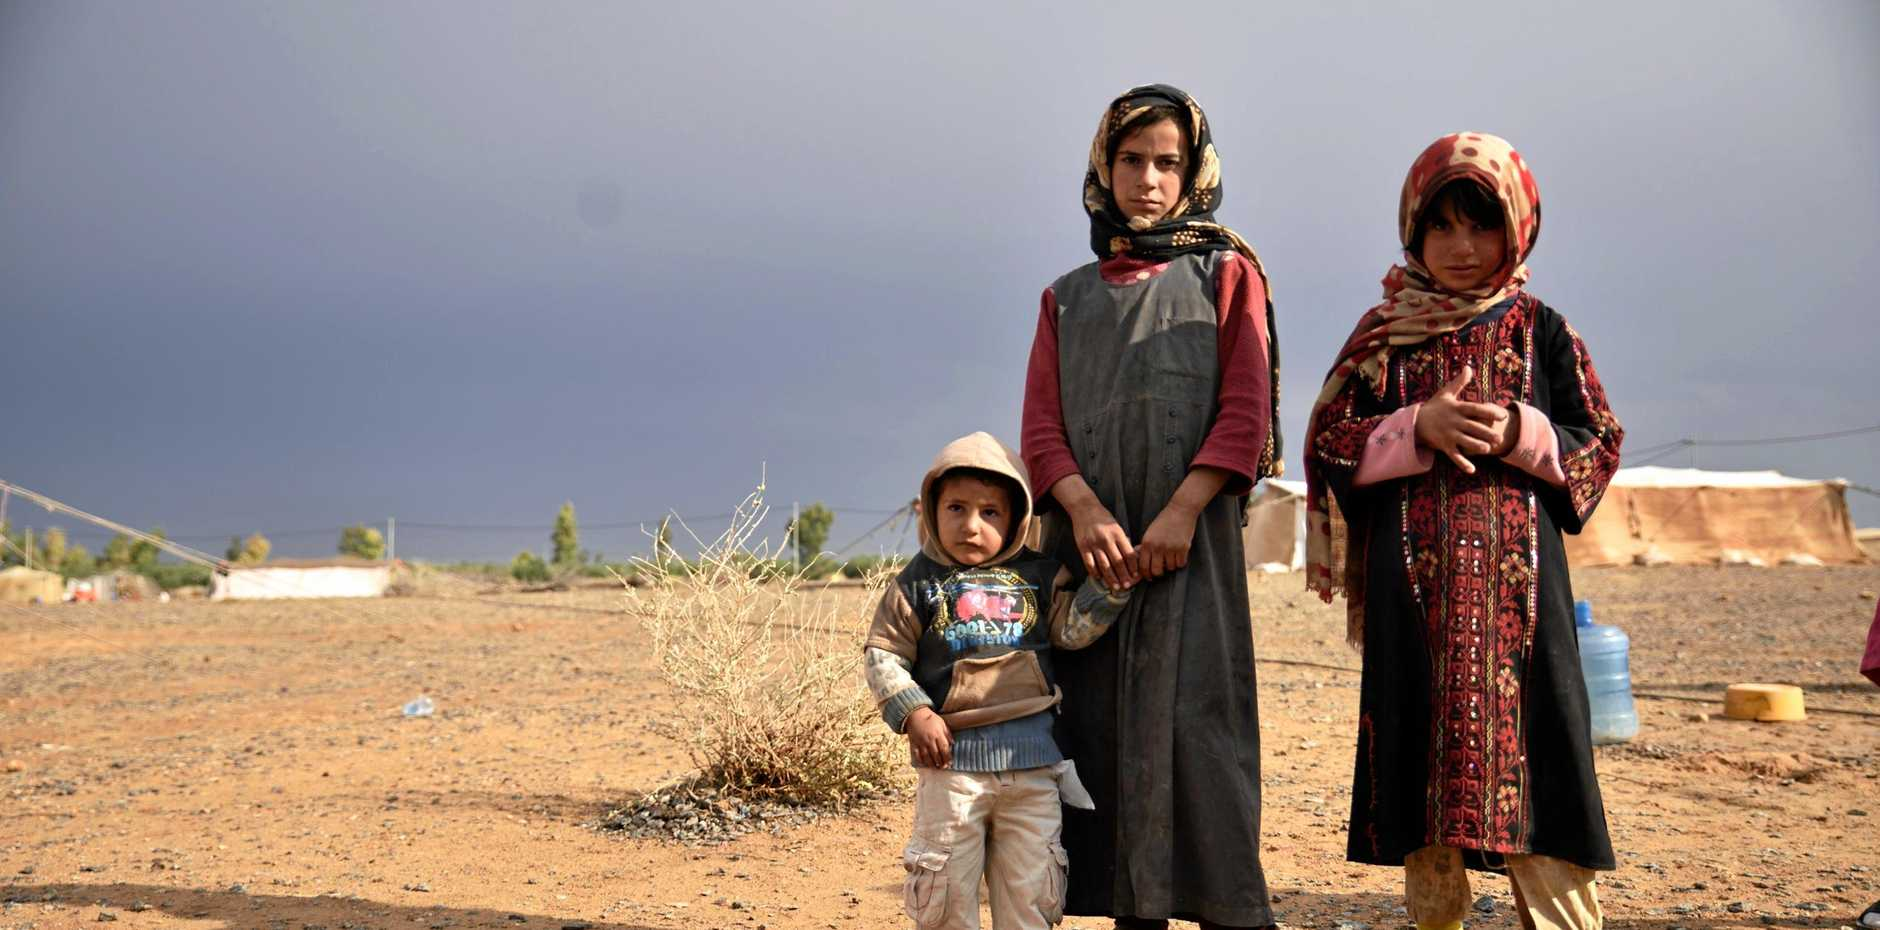 Local children caught up in the humanitarian crisis in Syria.